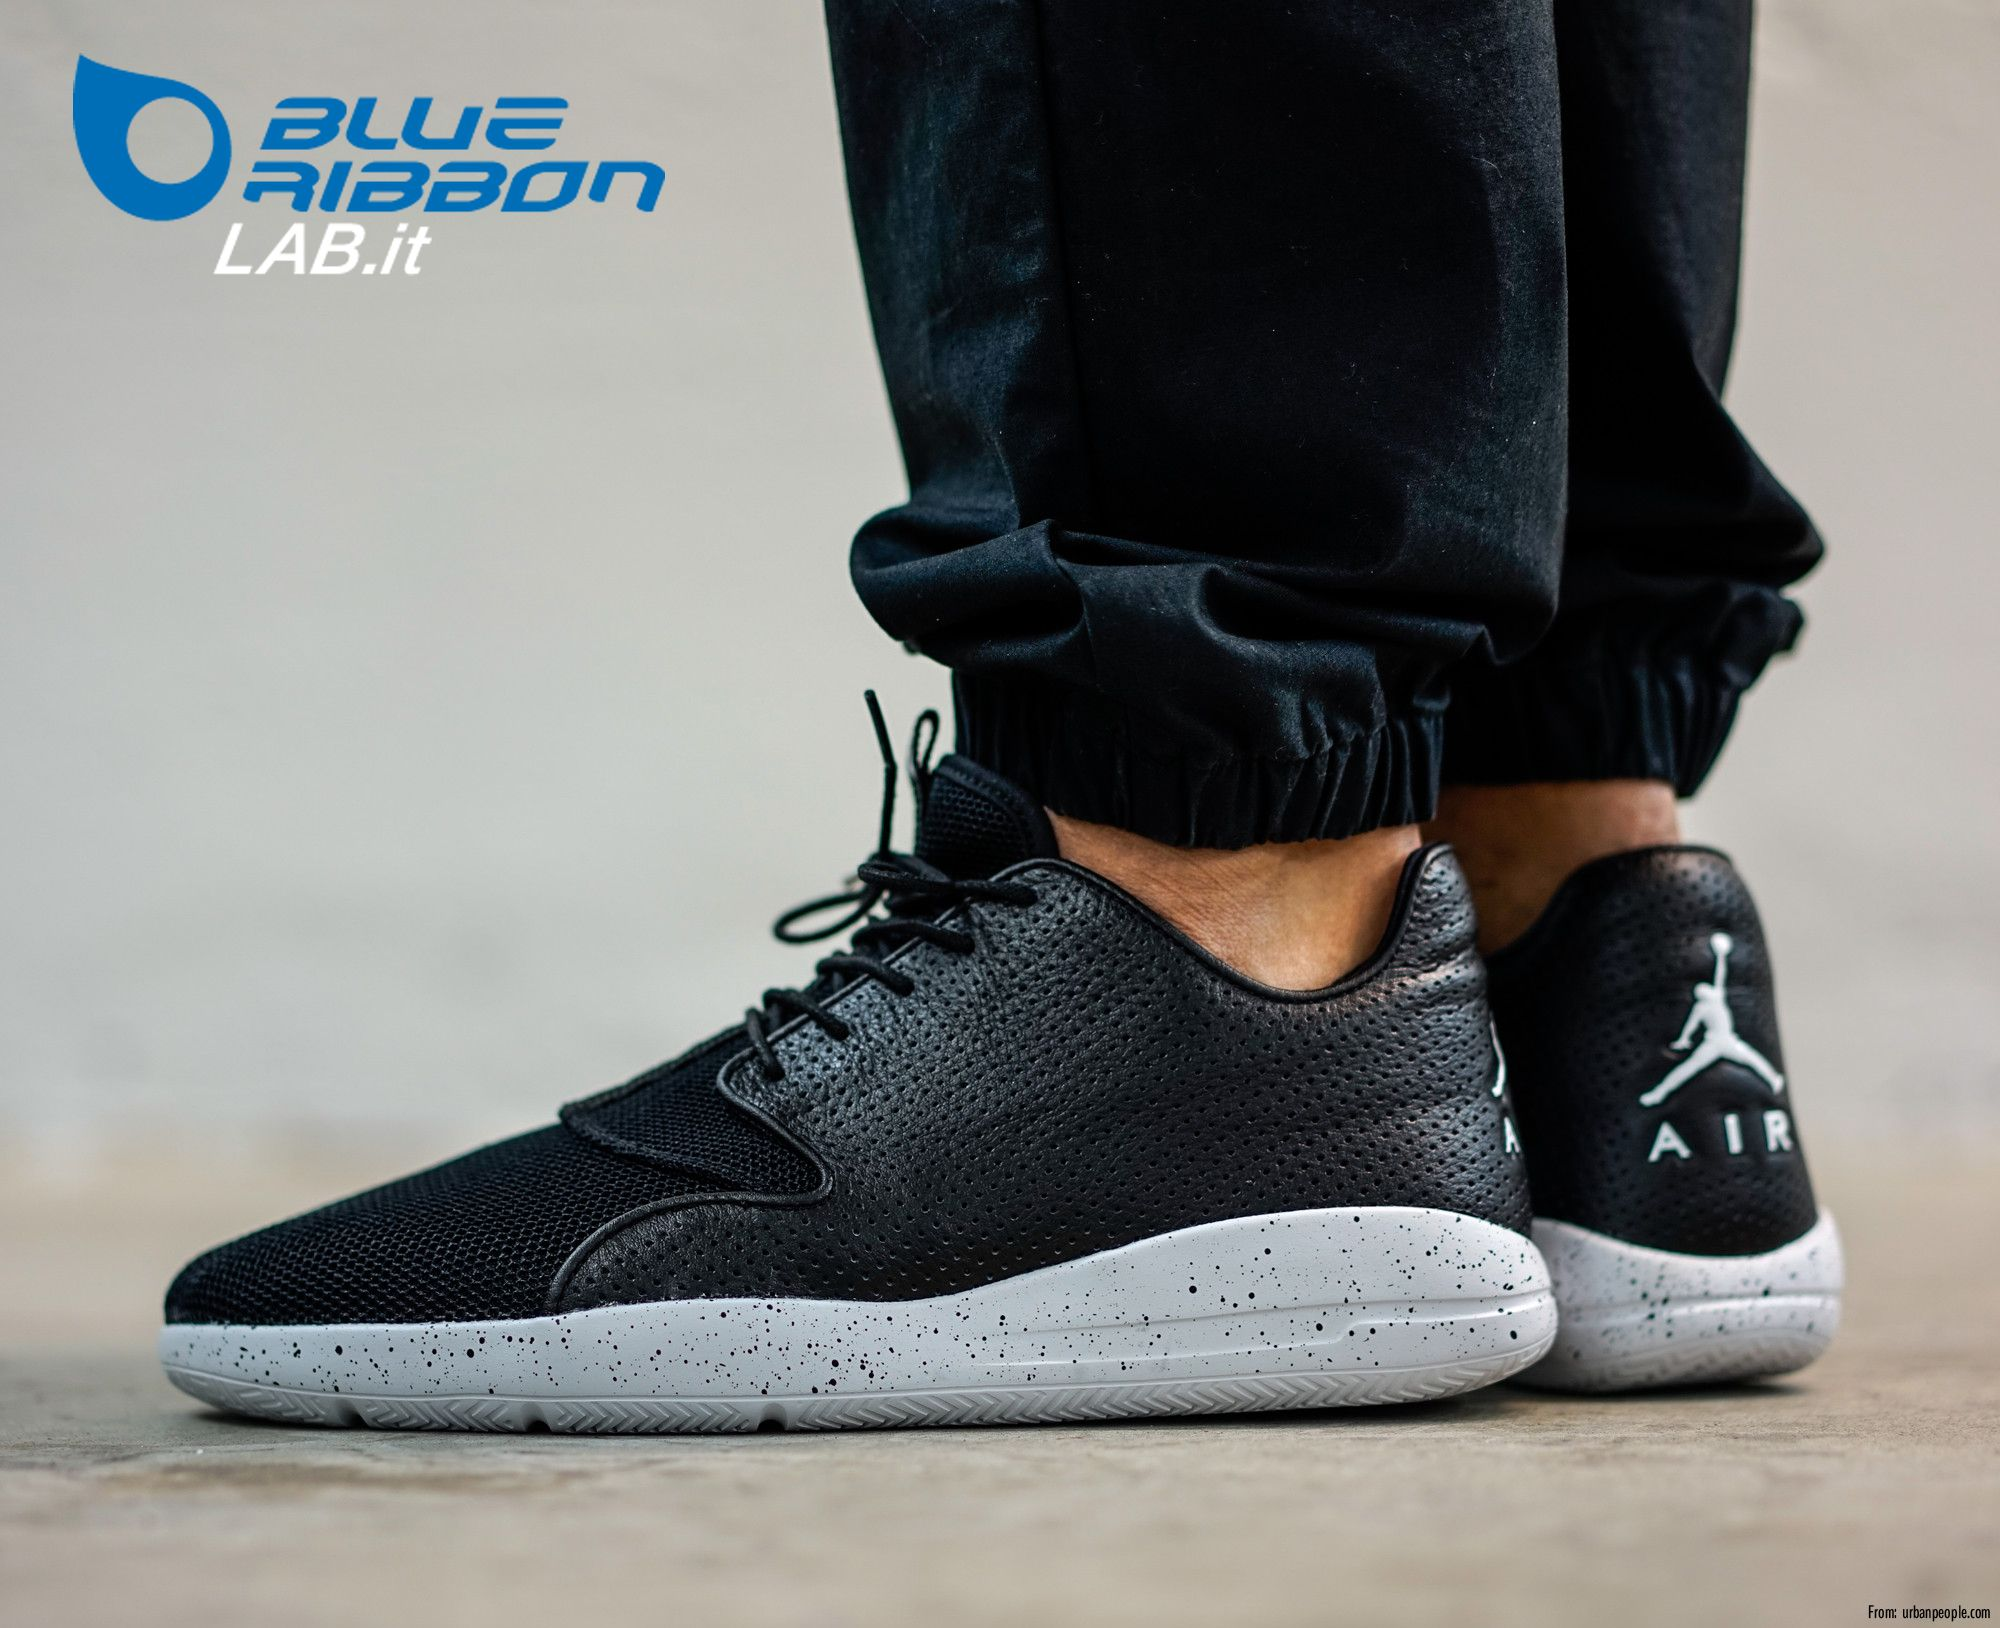 e0105e1b0dfe Jordan Eclipse- men s shoe